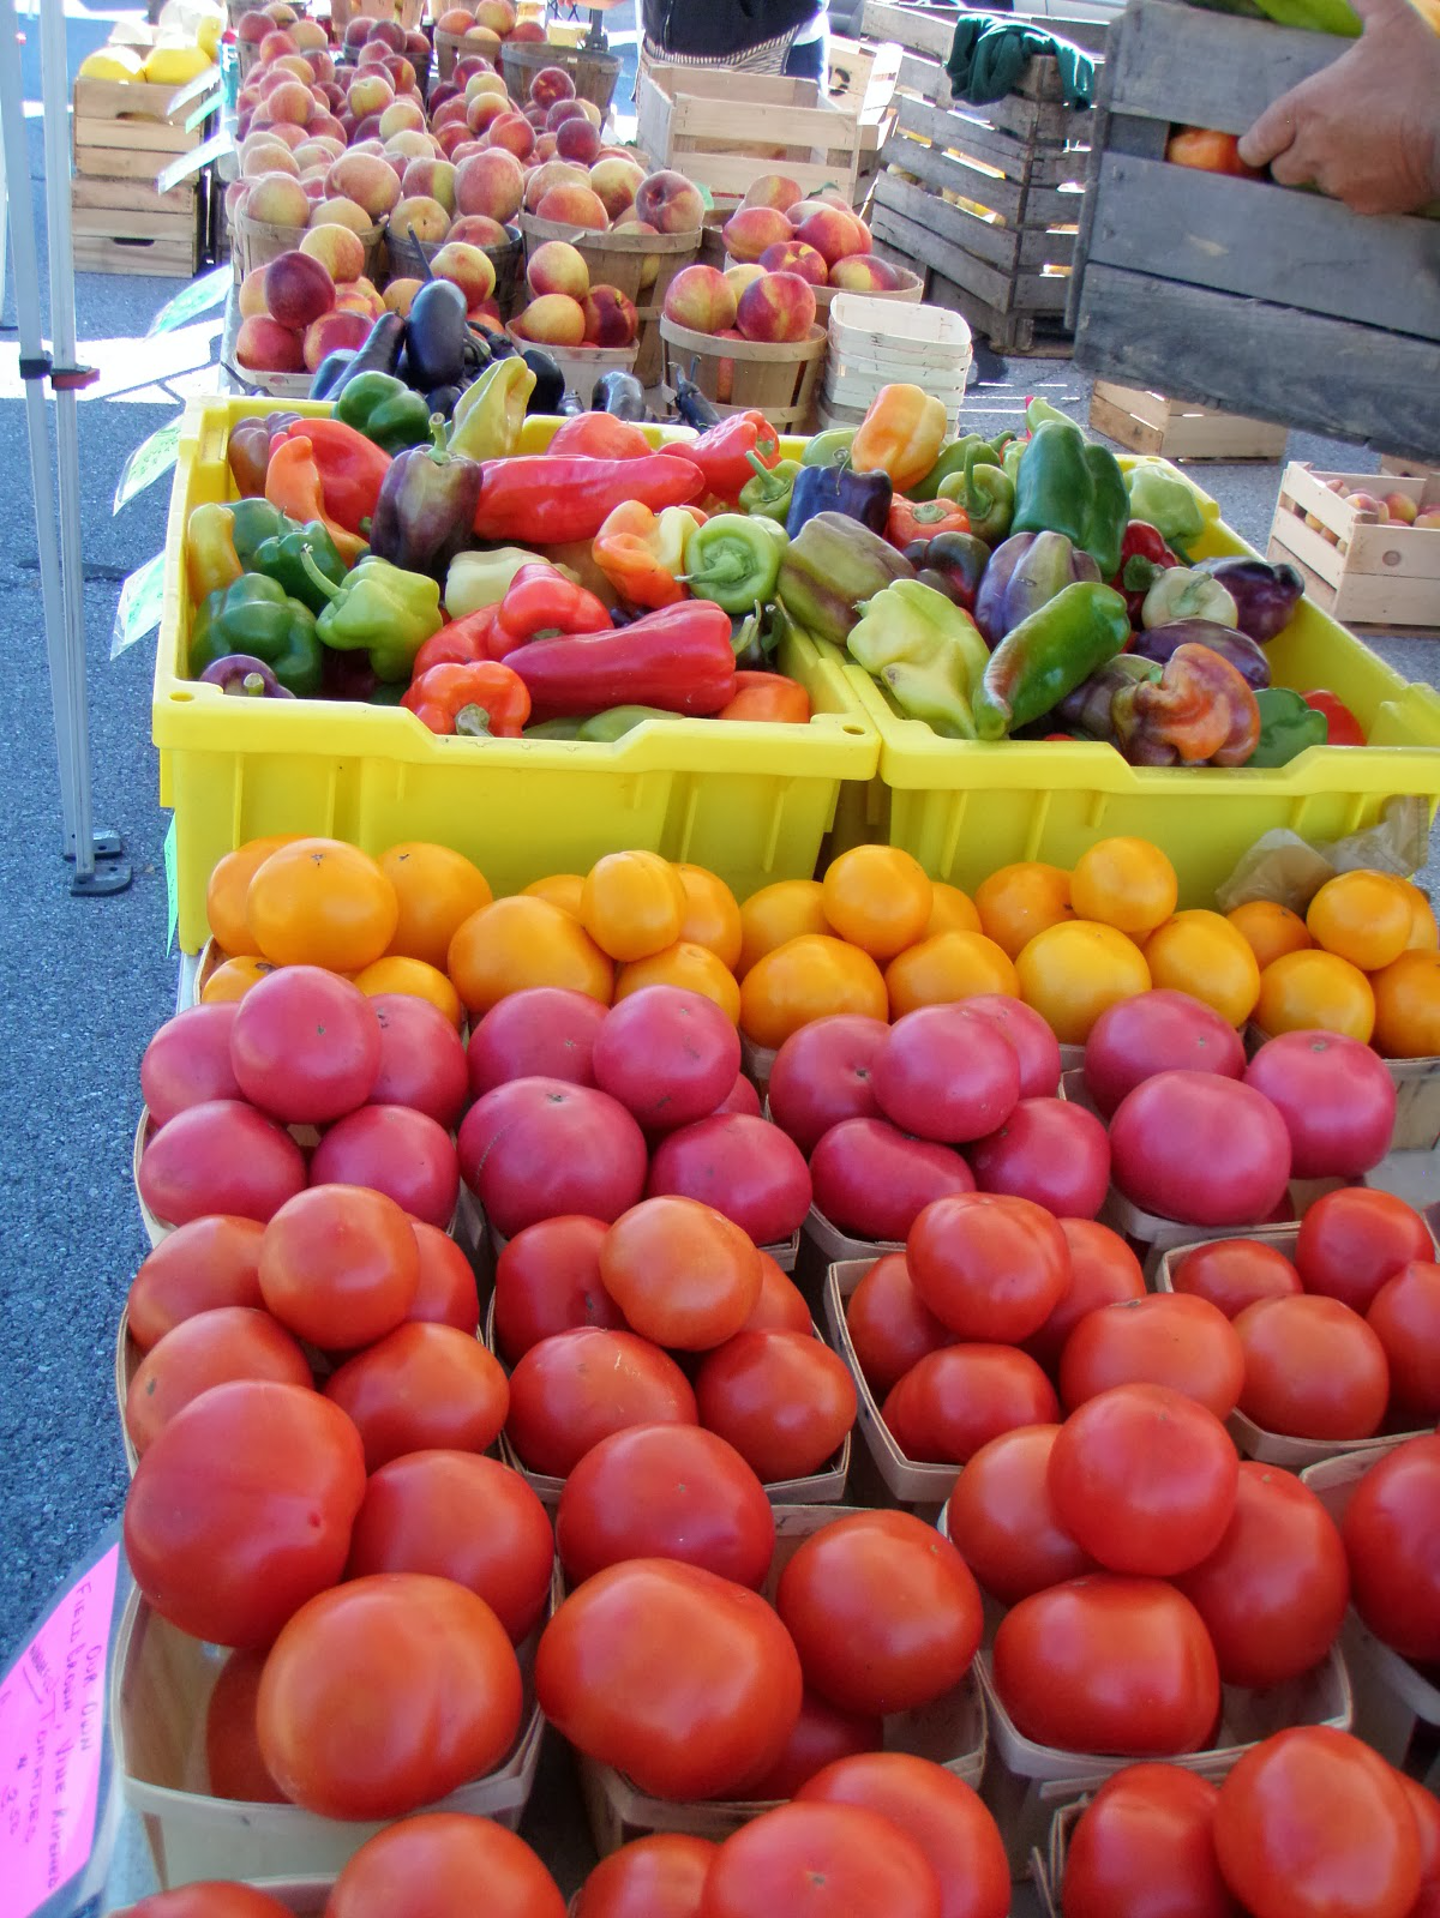 bins of fruits and vegetables at farmer's market